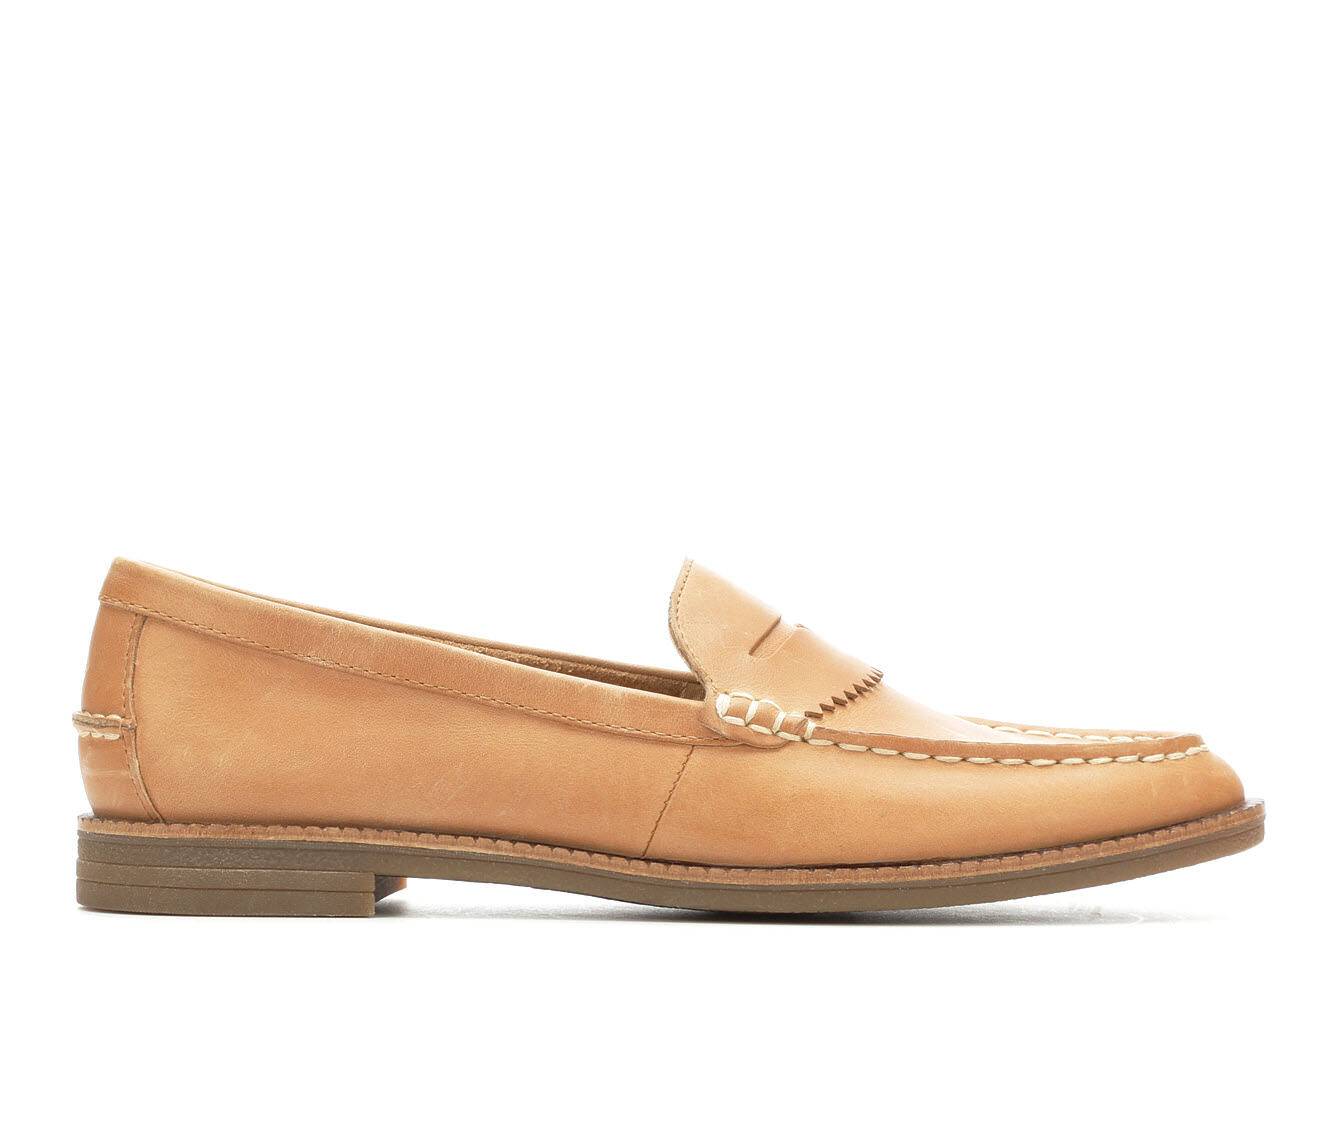 new arrivals Women's Sperry Waypoint Penny Shoes Light Tan